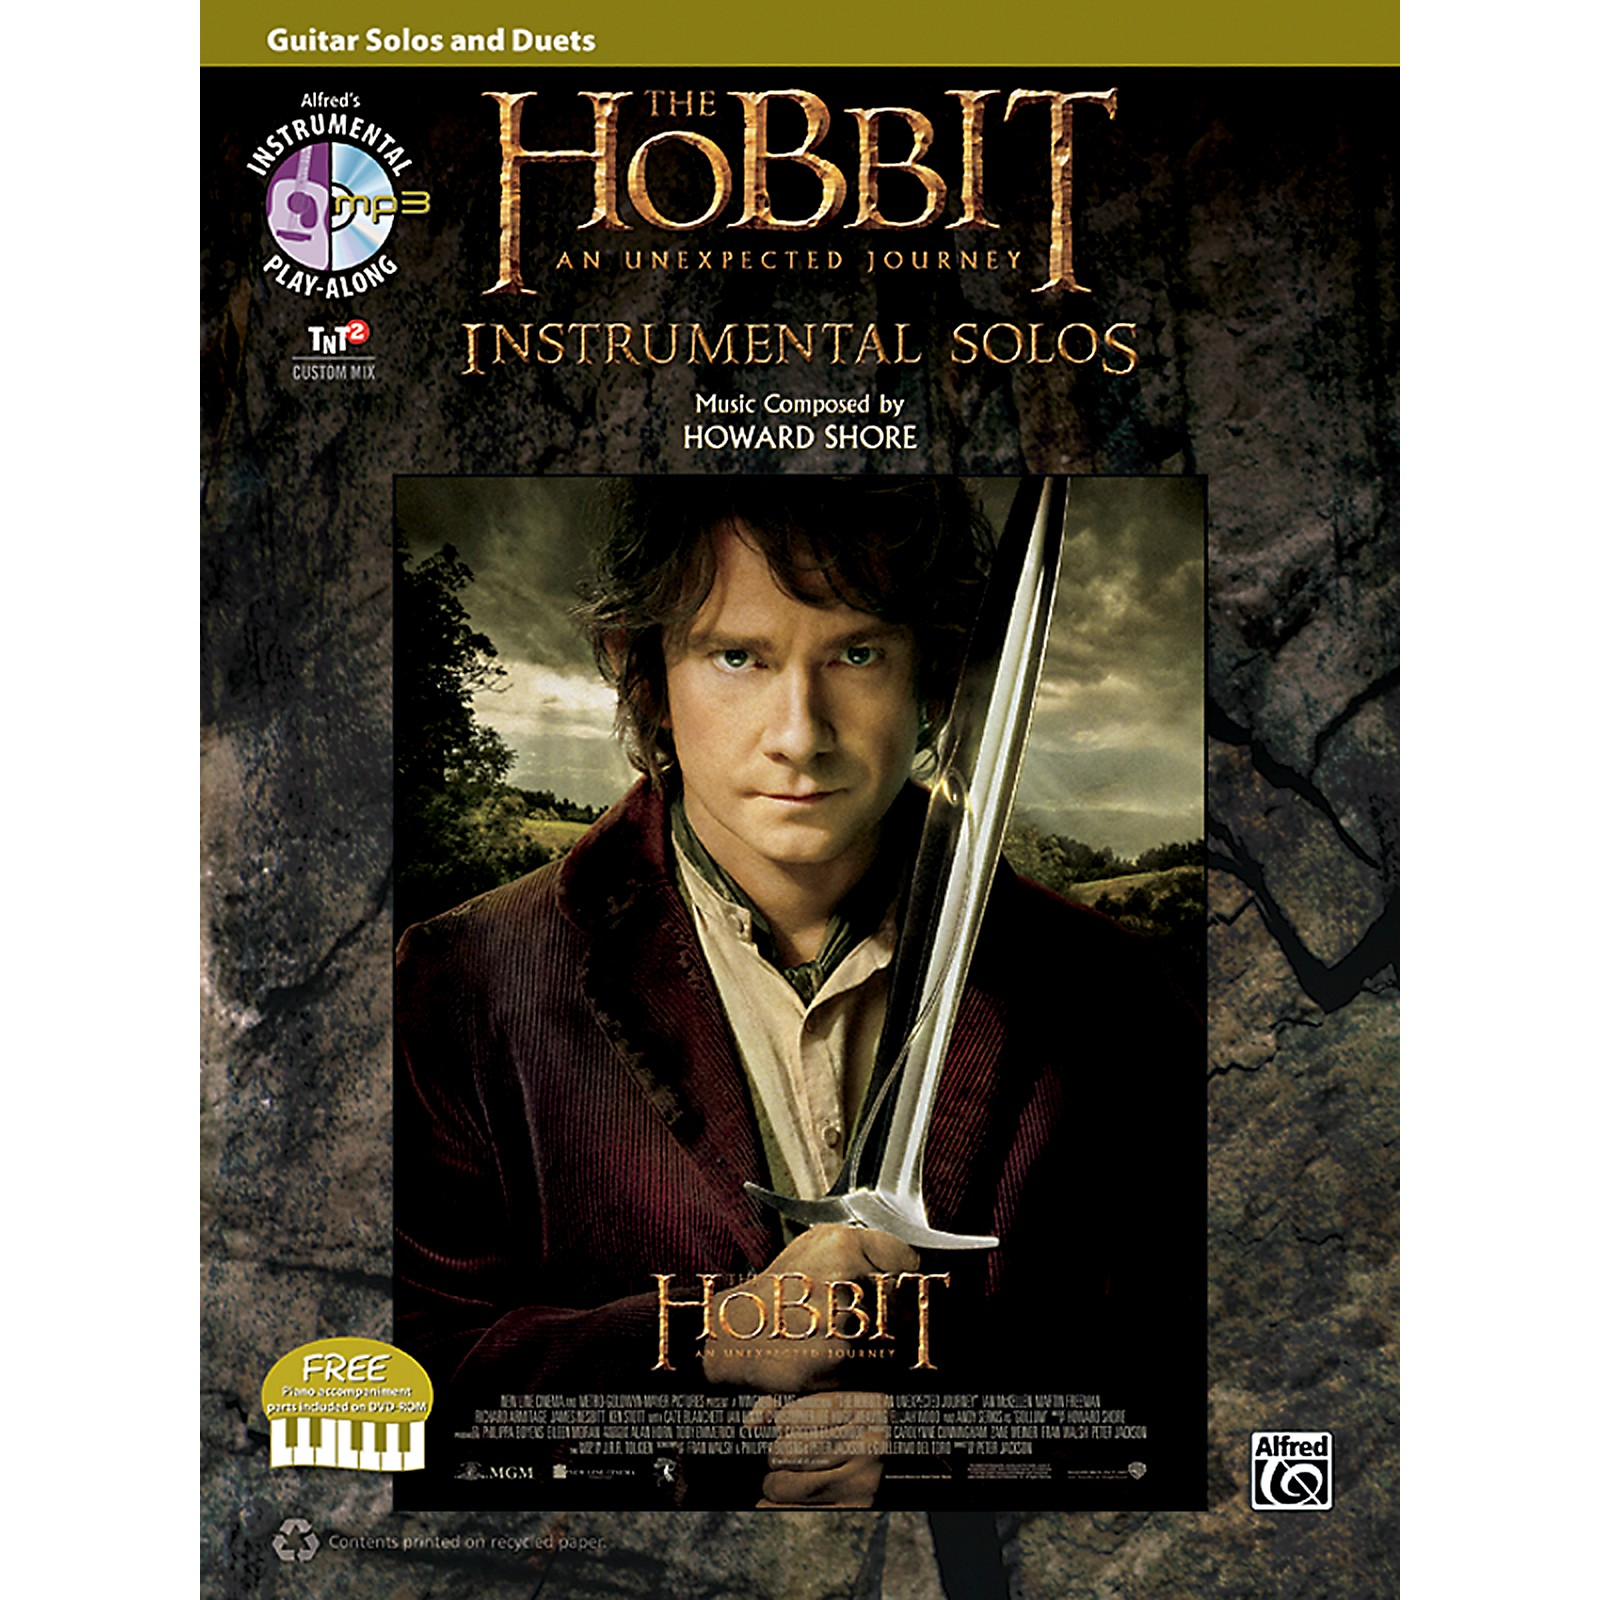 Alfred The Hobbit: An Unexpected Journey, Guitar Solos and Duets (Book/DVD)